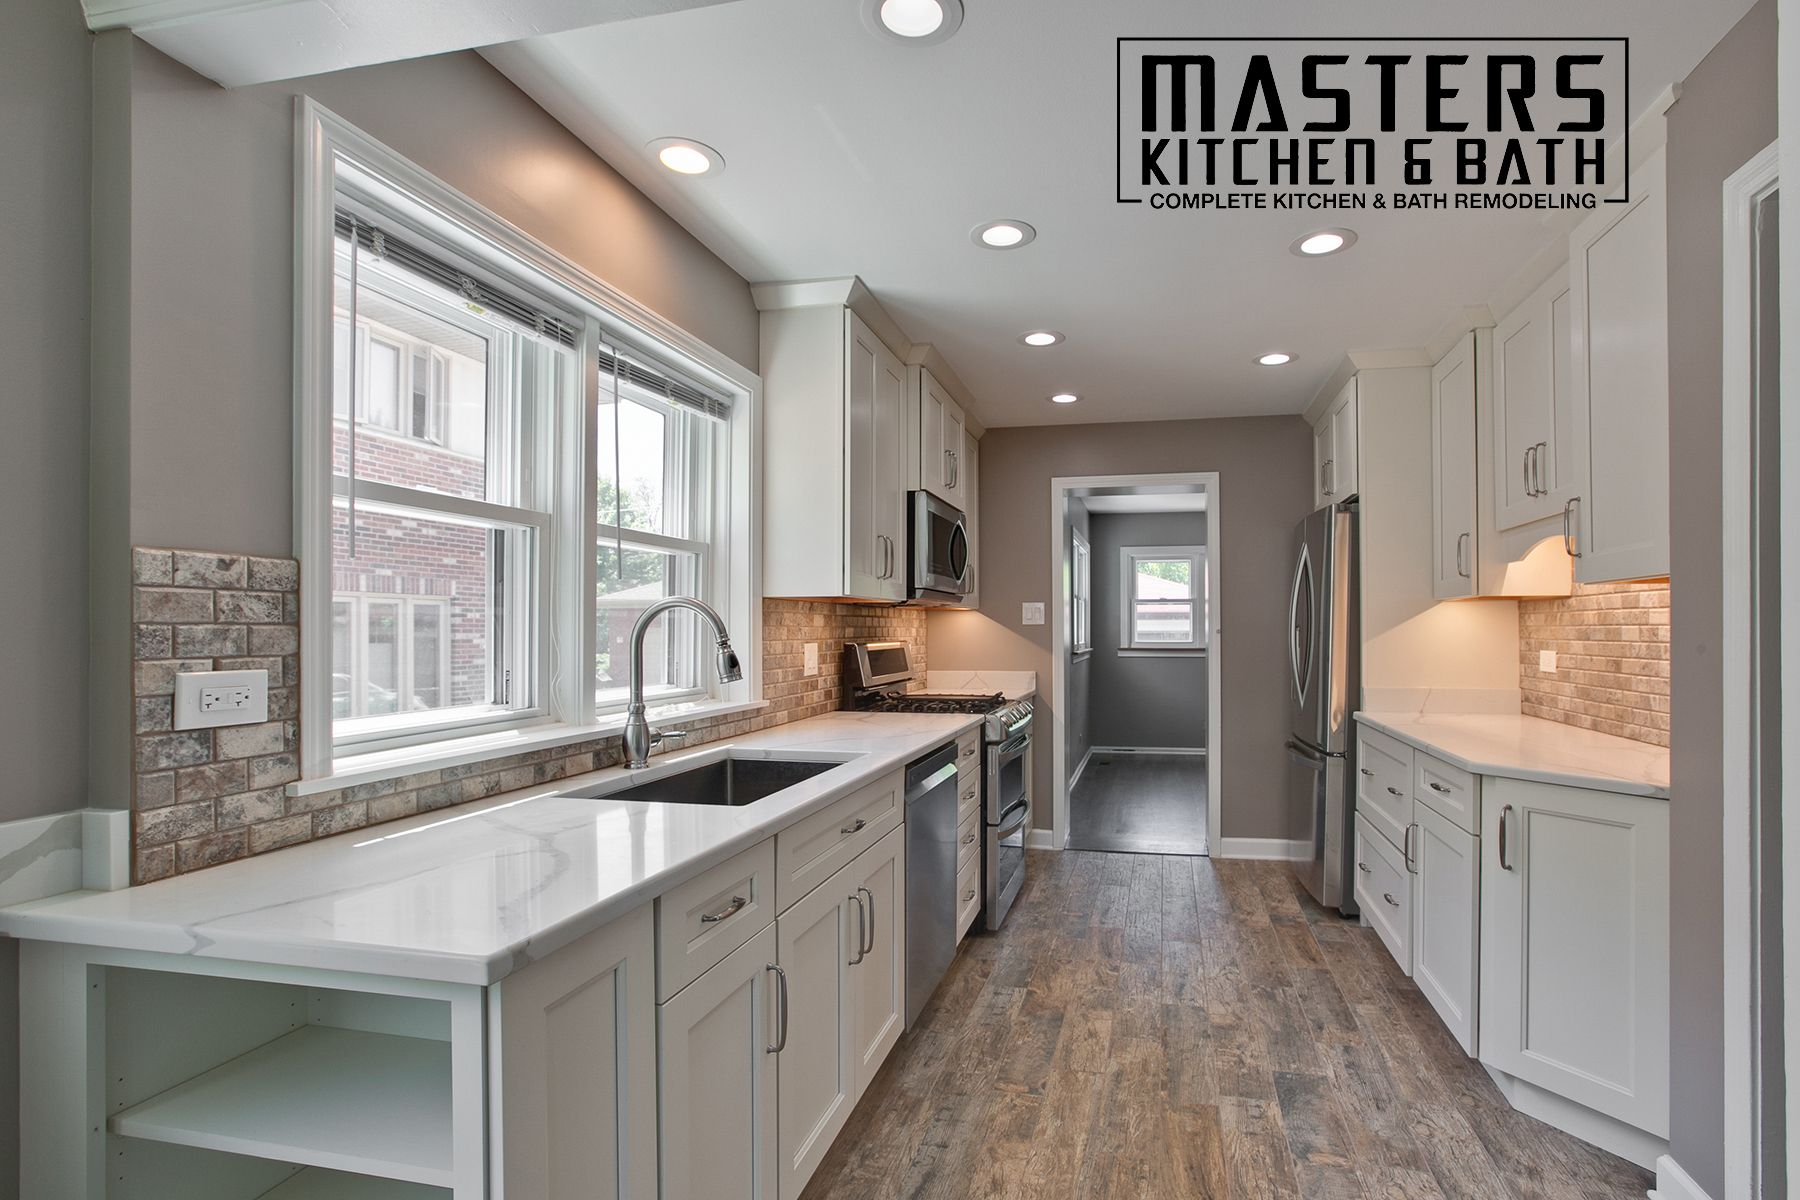 Fresh Bathroom Remodel By Masters Kitchen And Bath In 2020 Full Kitchen Designs Bathrooms Remodel Kitchen And Bath Showroom